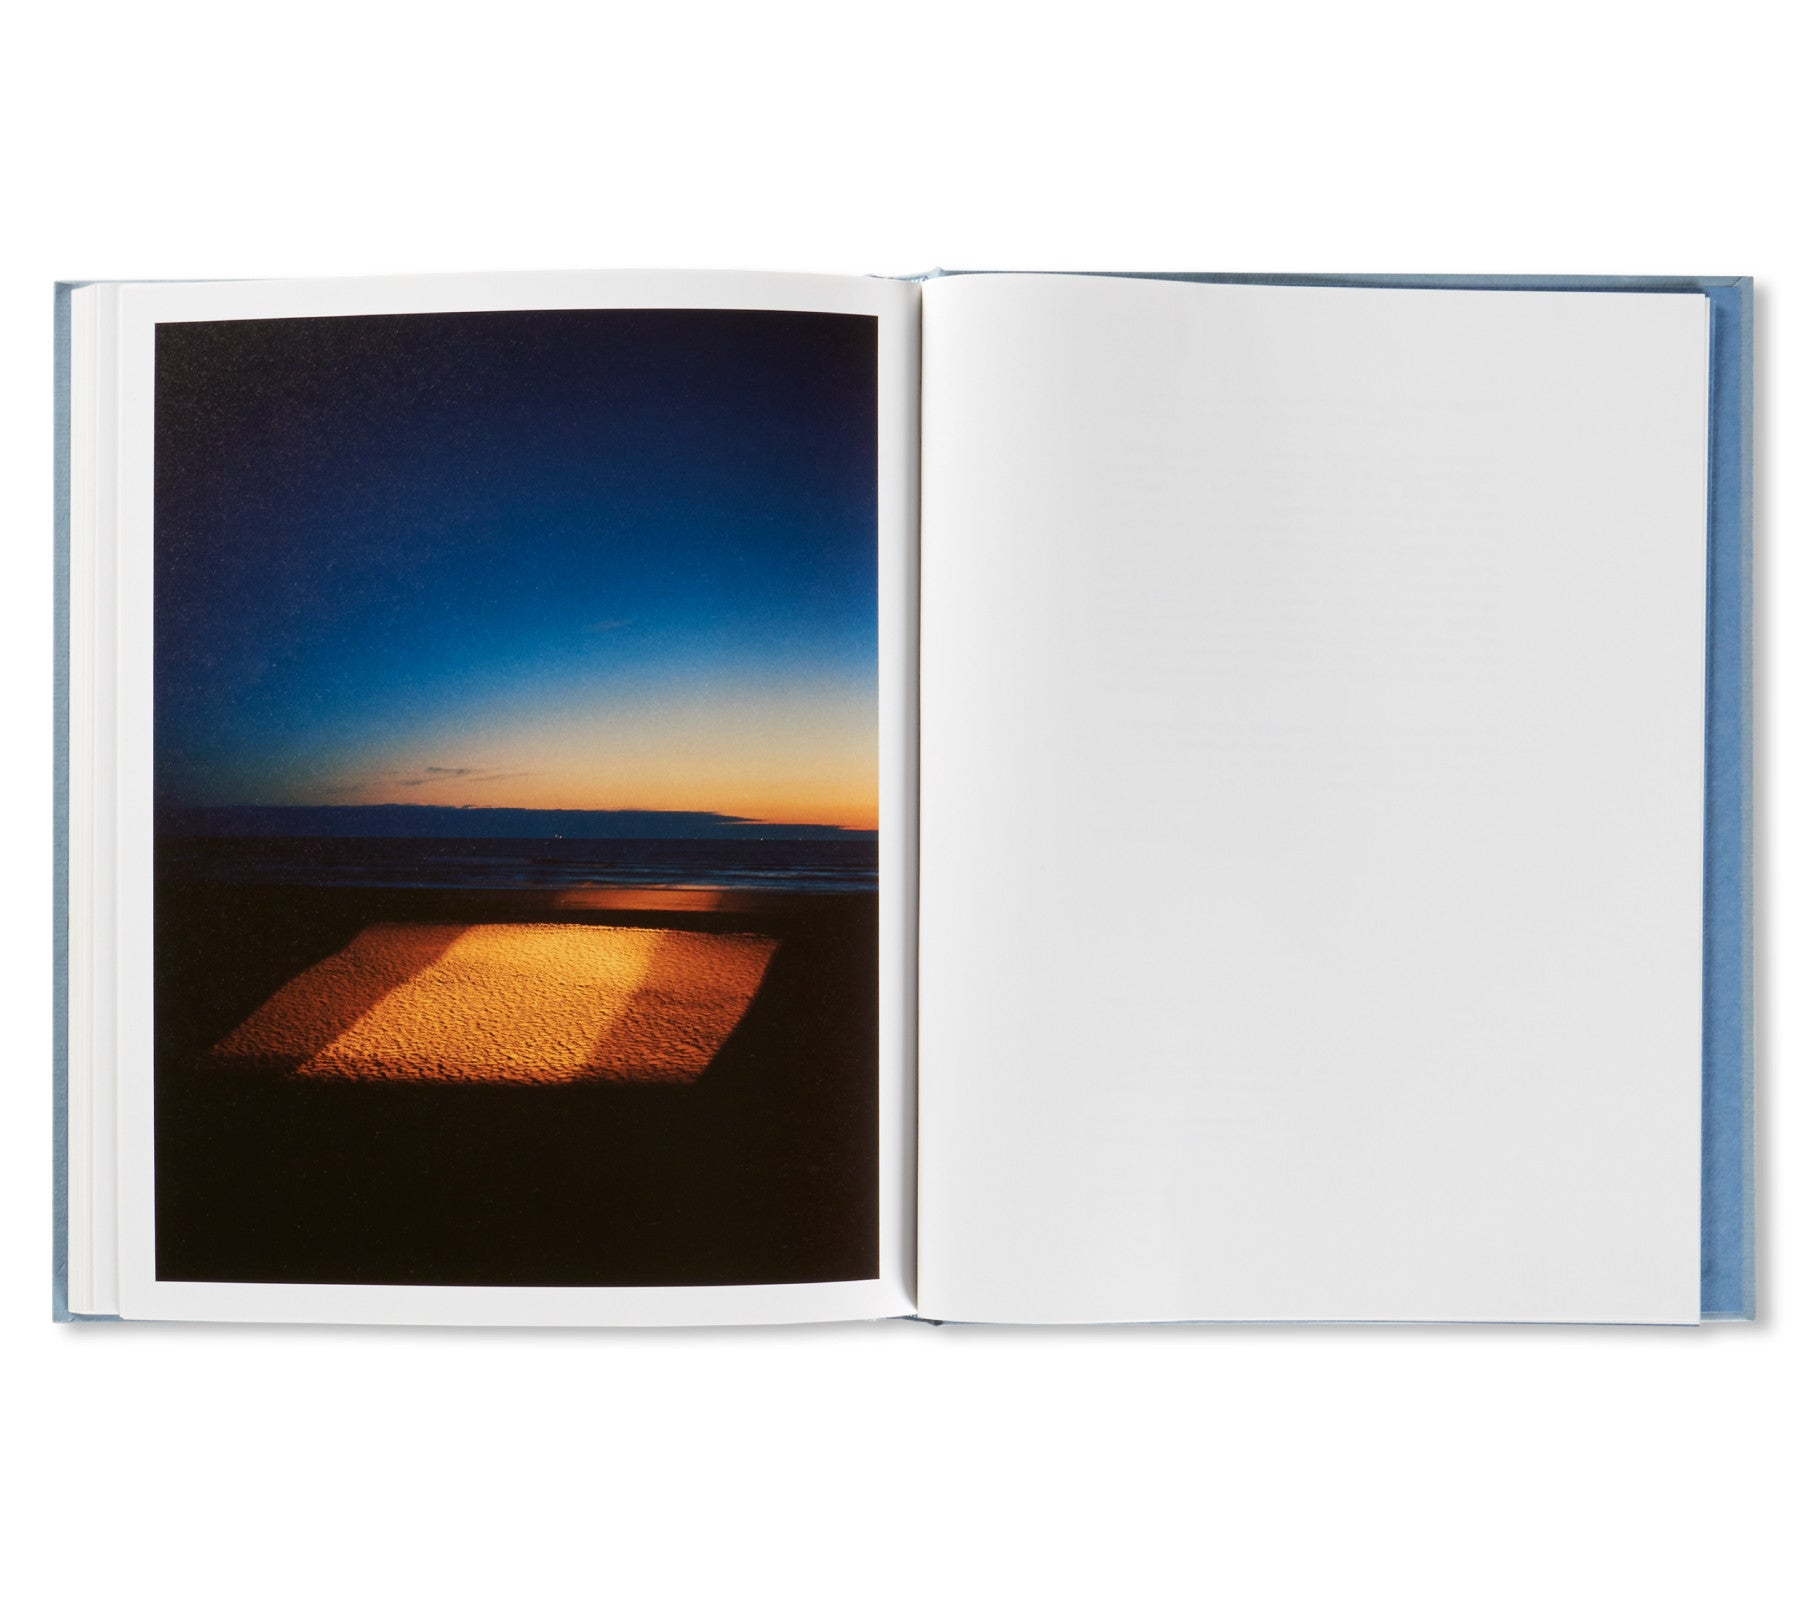 ZZYZX by Gregory Halpern [FIRST EDITION, THIRD PRINTING]